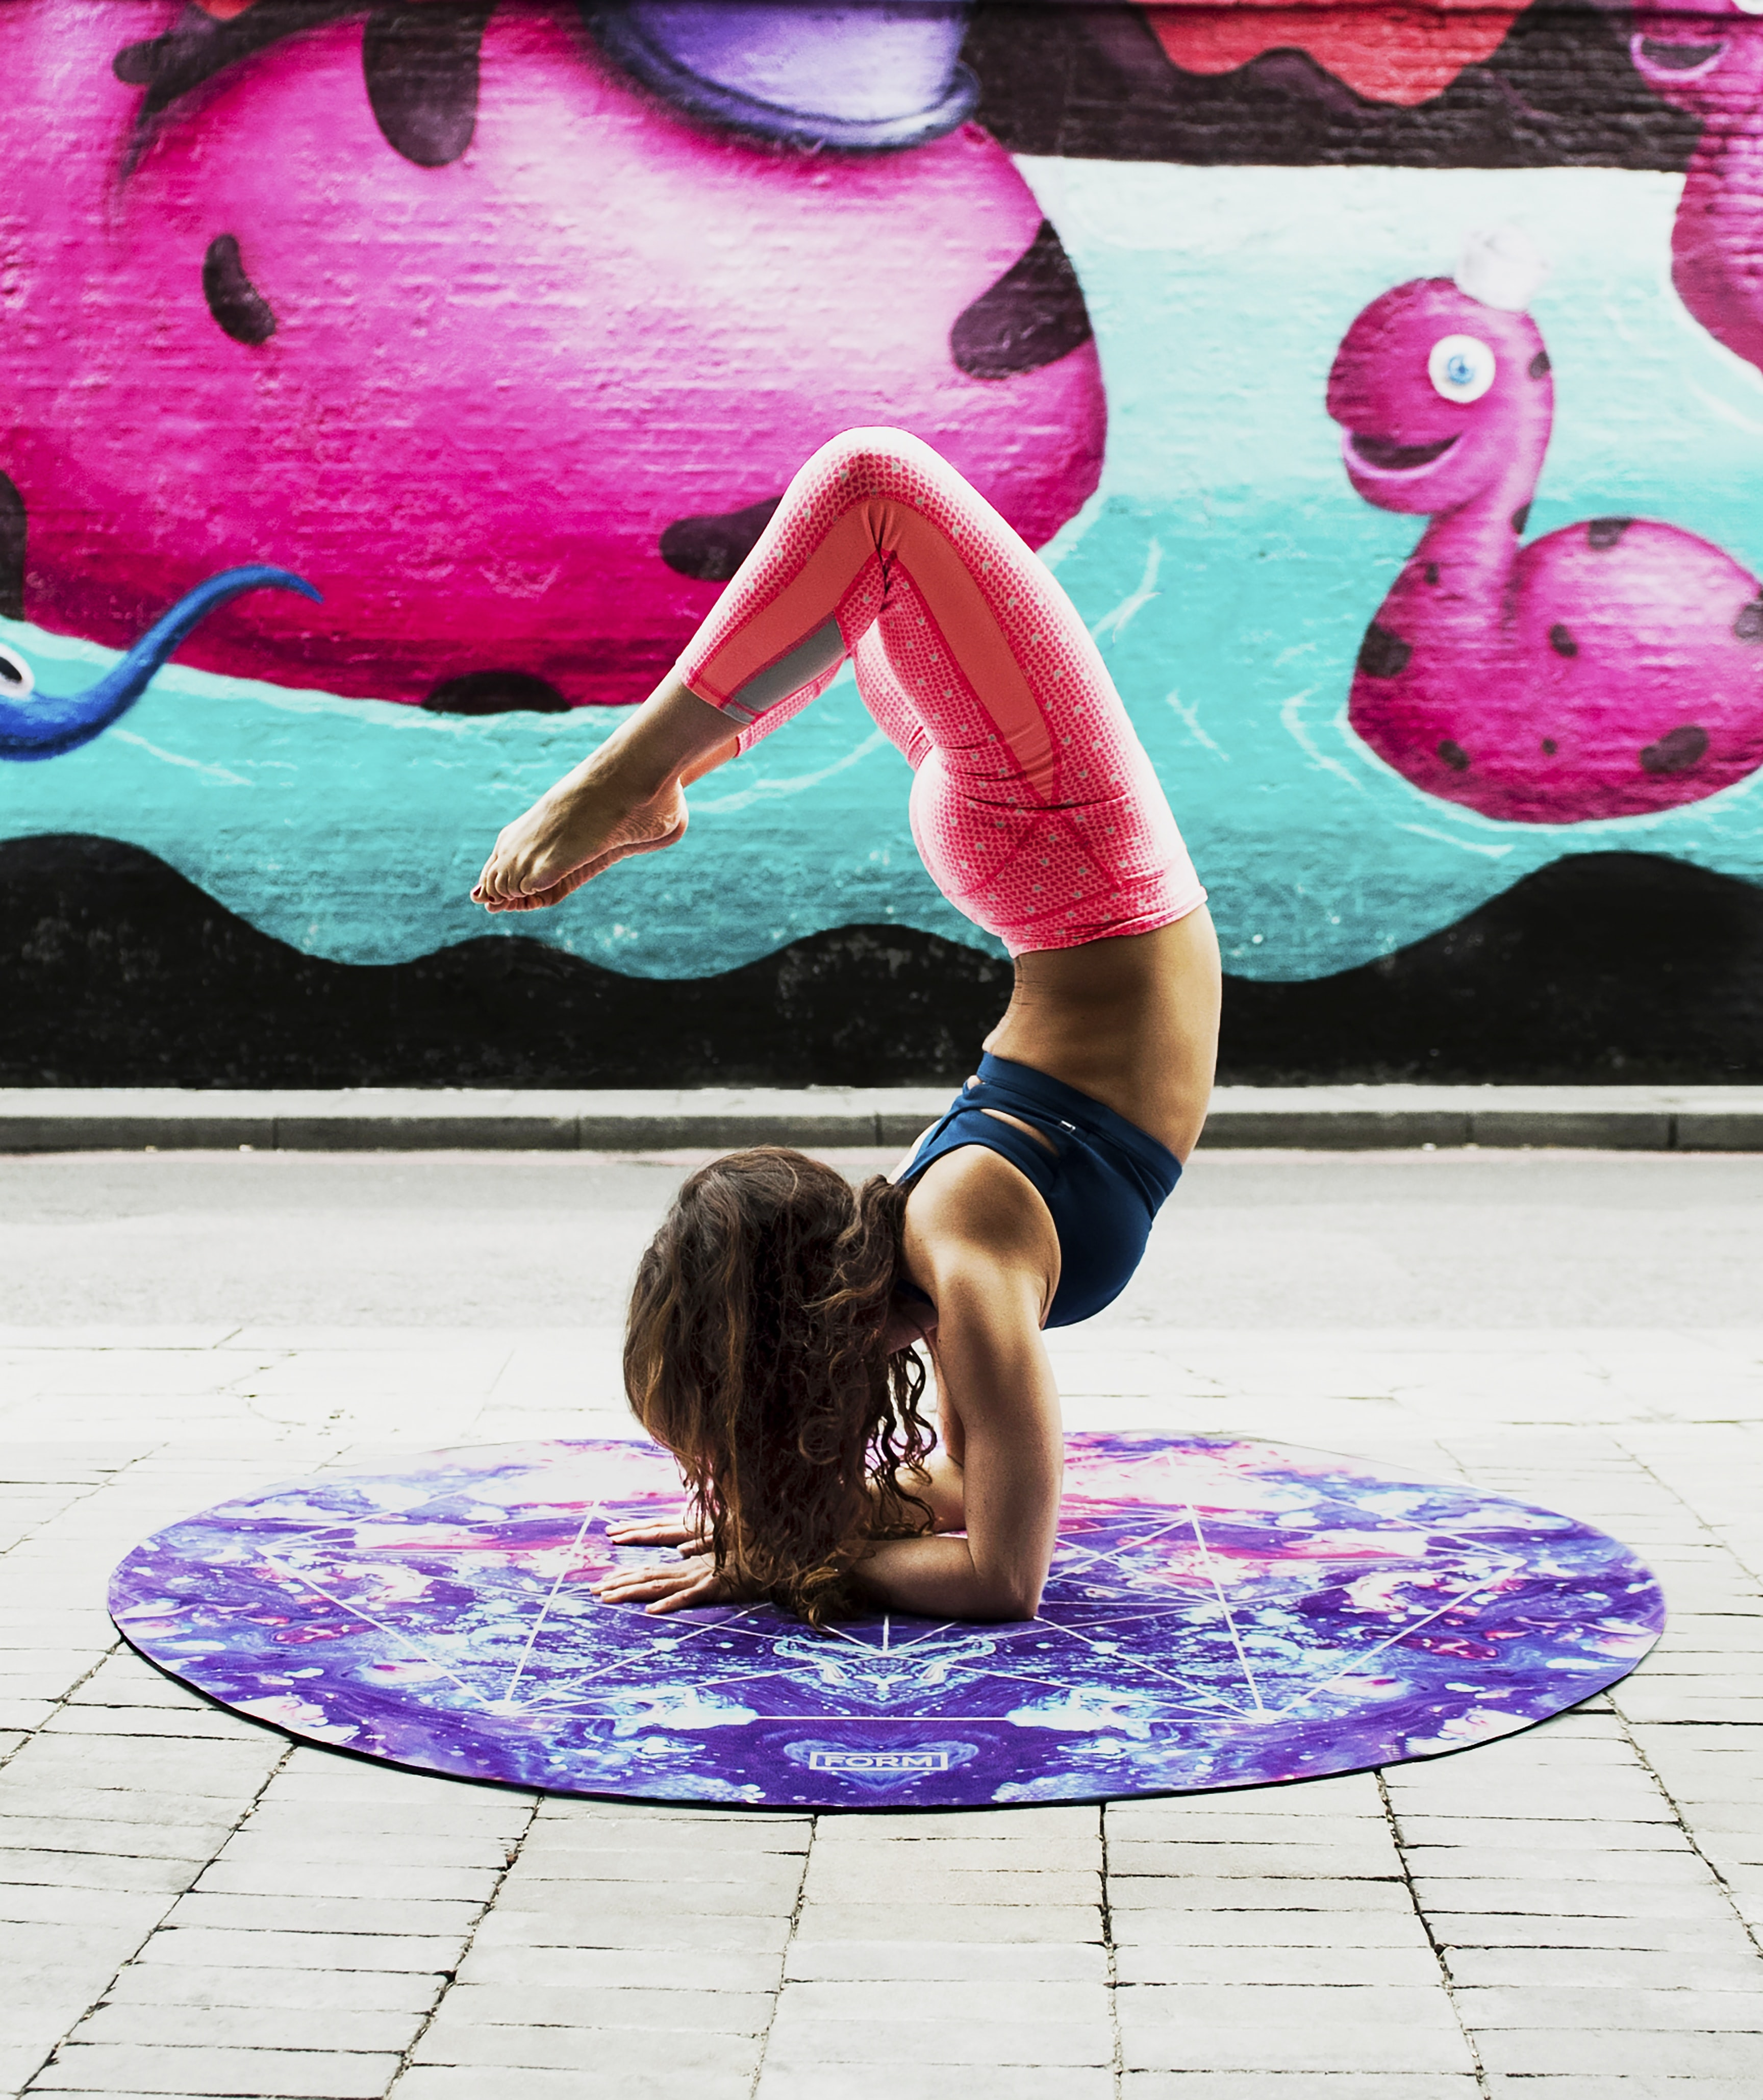 woman doing acrobats on purple mat during daytime